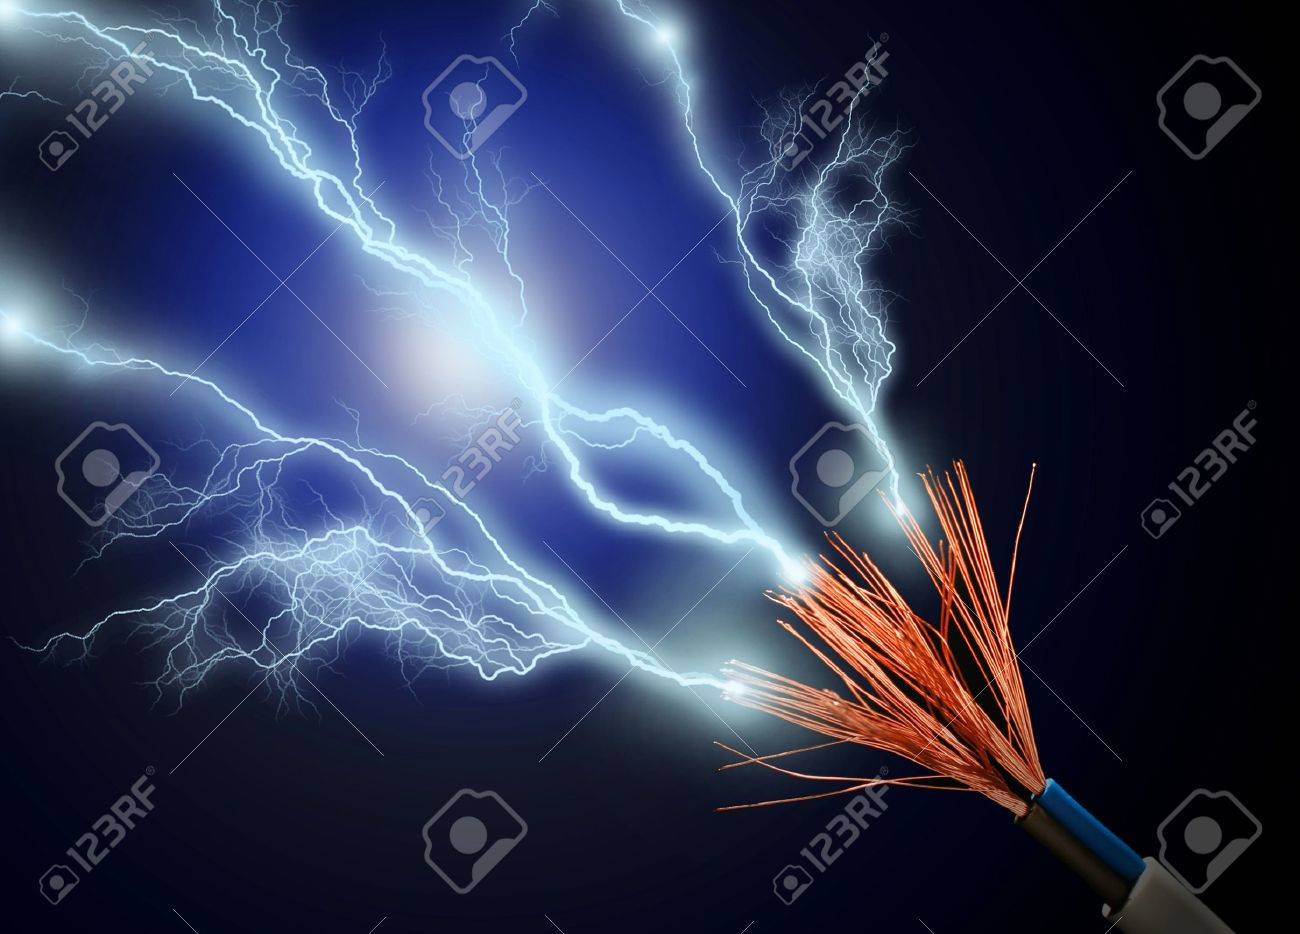 Wire and electric discharge over black background. Stock Photo - 8848688